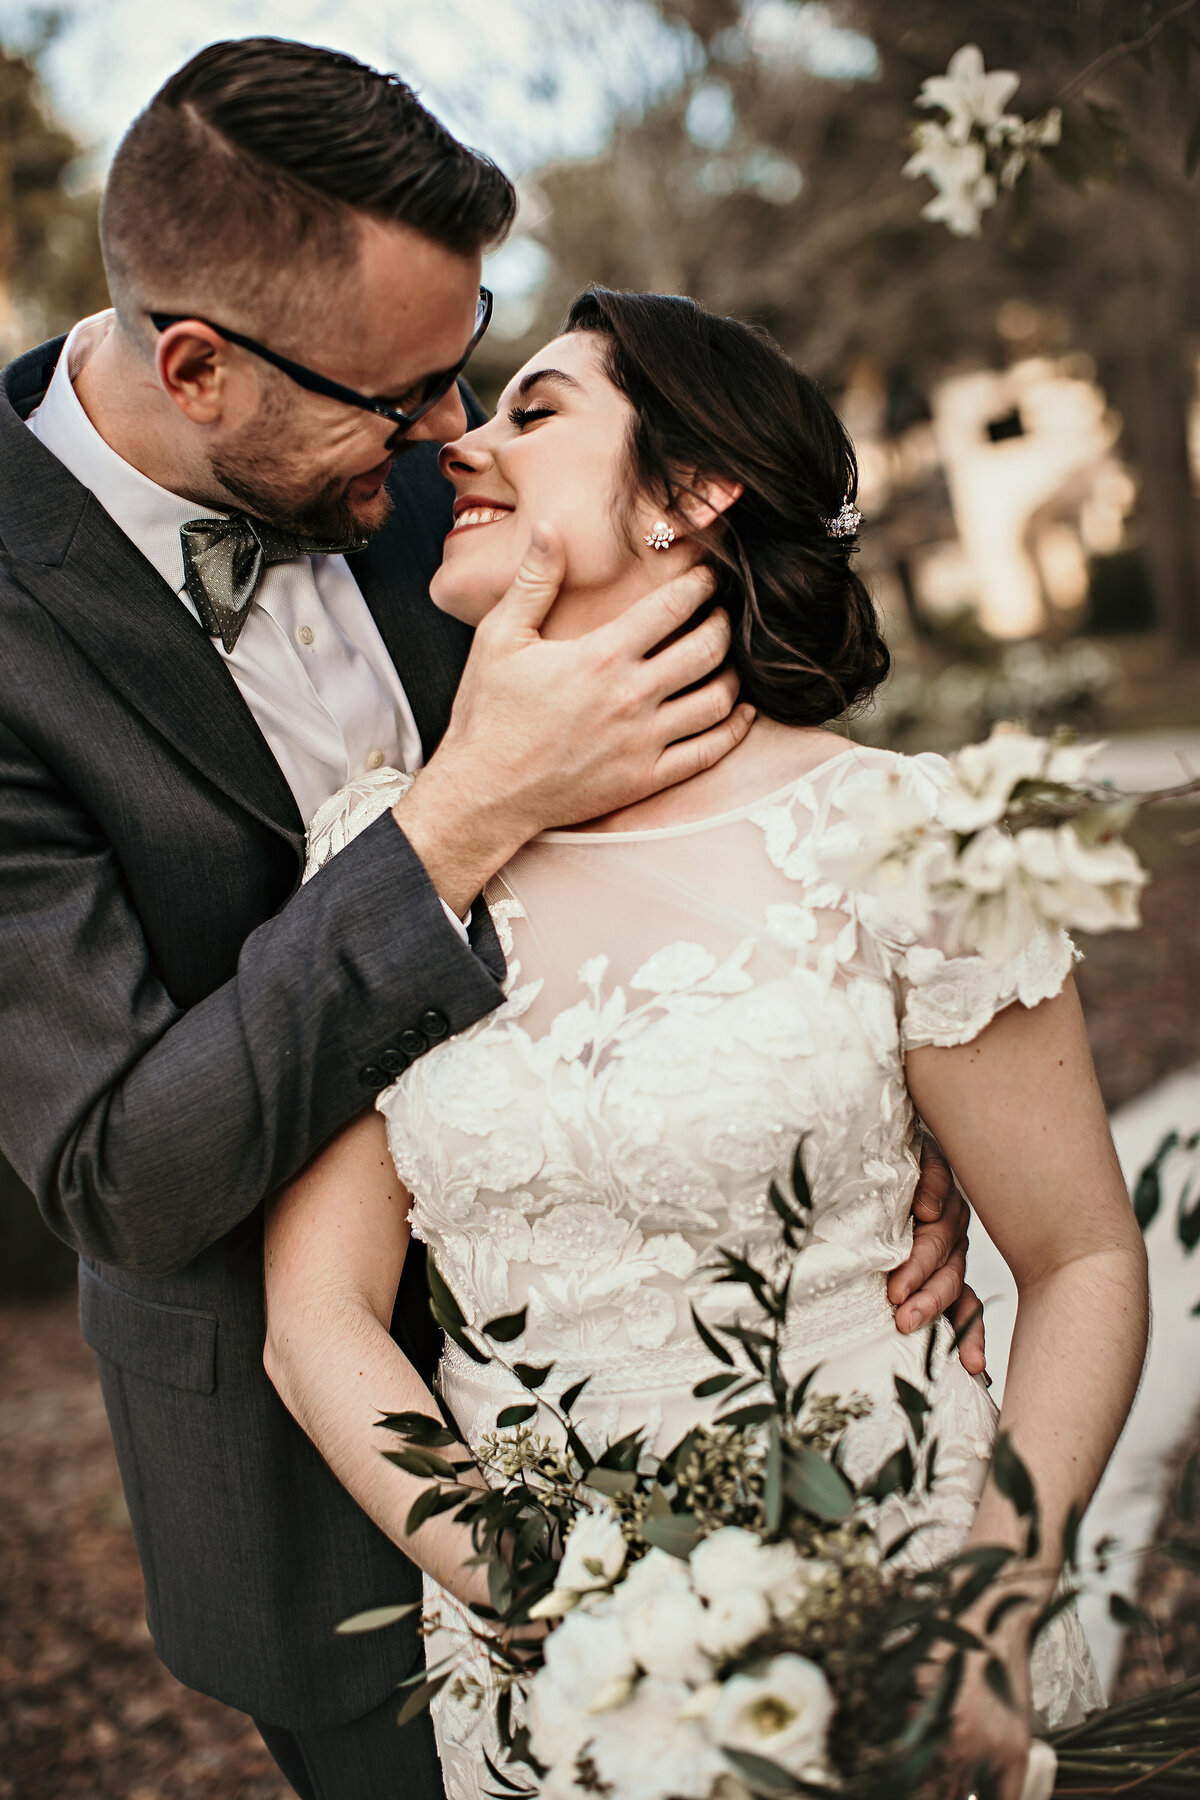 A picture of a closeup view of the bride looking up at the groom behind her as he tenderly holds her neck and leans in as they smile with their faces romantically close on their wedding day